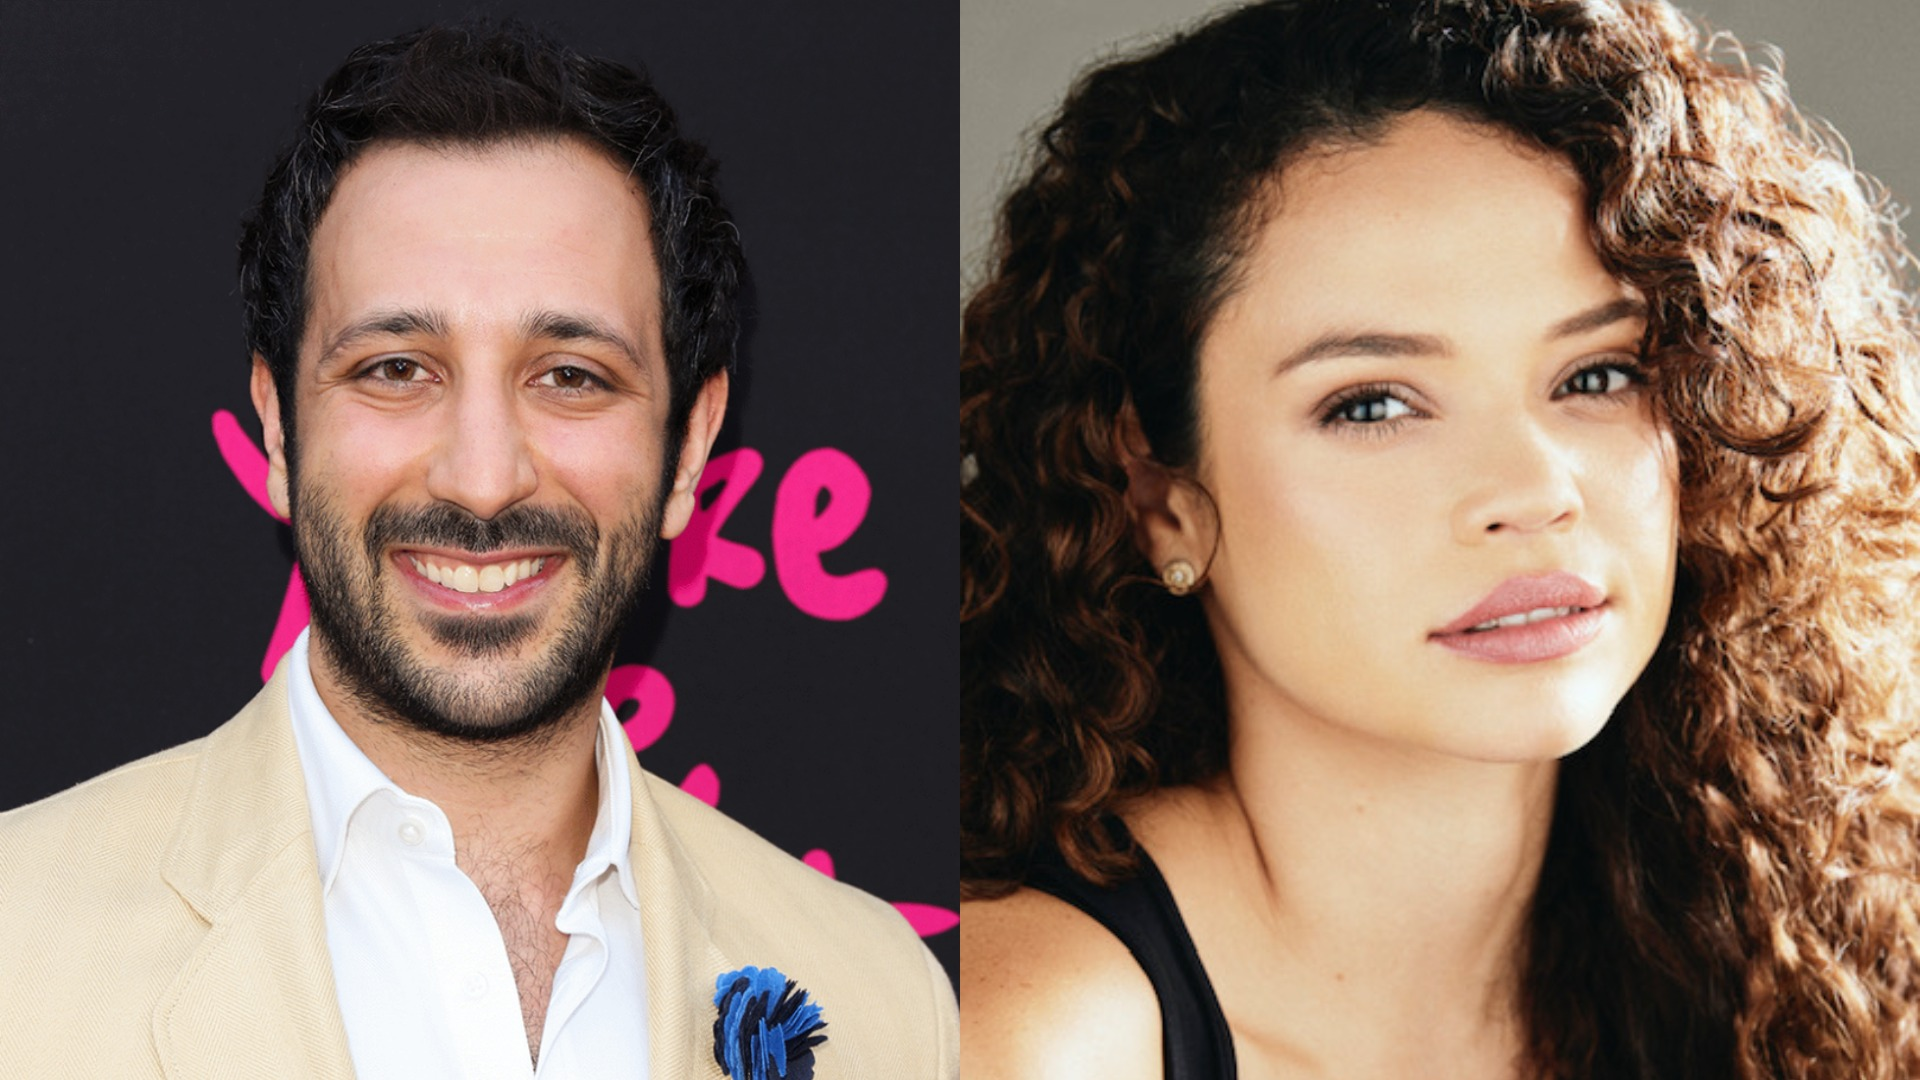 Deadline is reporting that Desmin Borges and Natasha Lopez are the latest names to join the cast of HBO's series adaptation of Audrey Niffenegger's novel The Time Traveler's Wife.